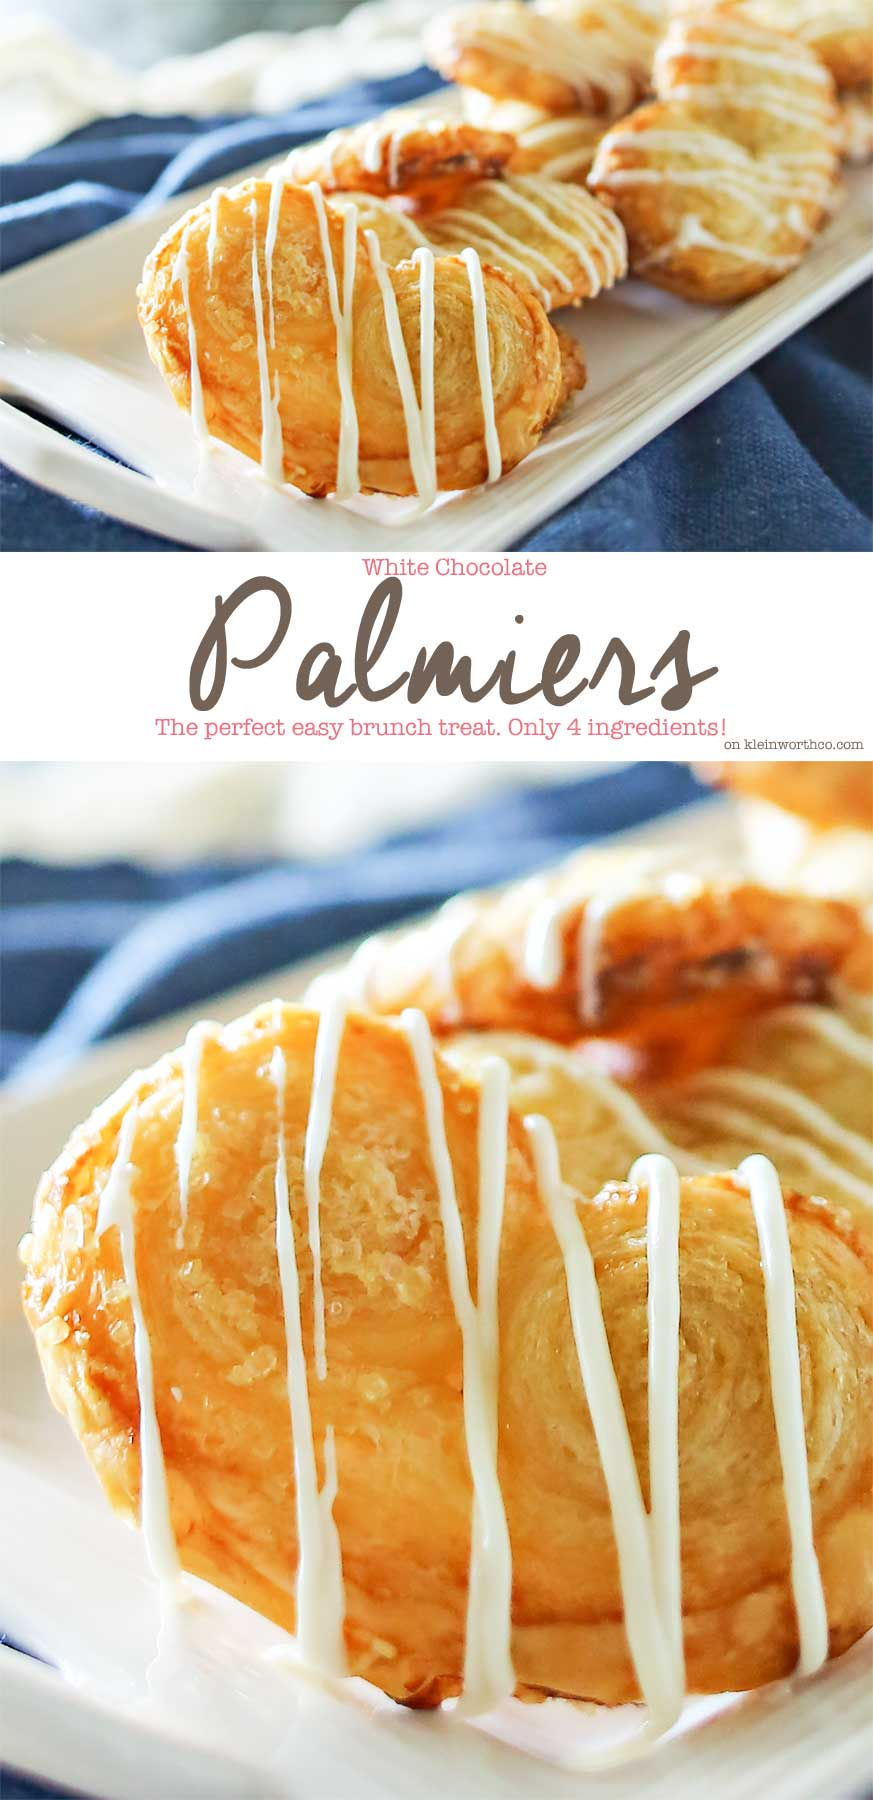 White Chocolate Palmiers are a simple cookie made with puff pastry. Ready in as little as 40 minutes, they make a great addition to summer brunch.